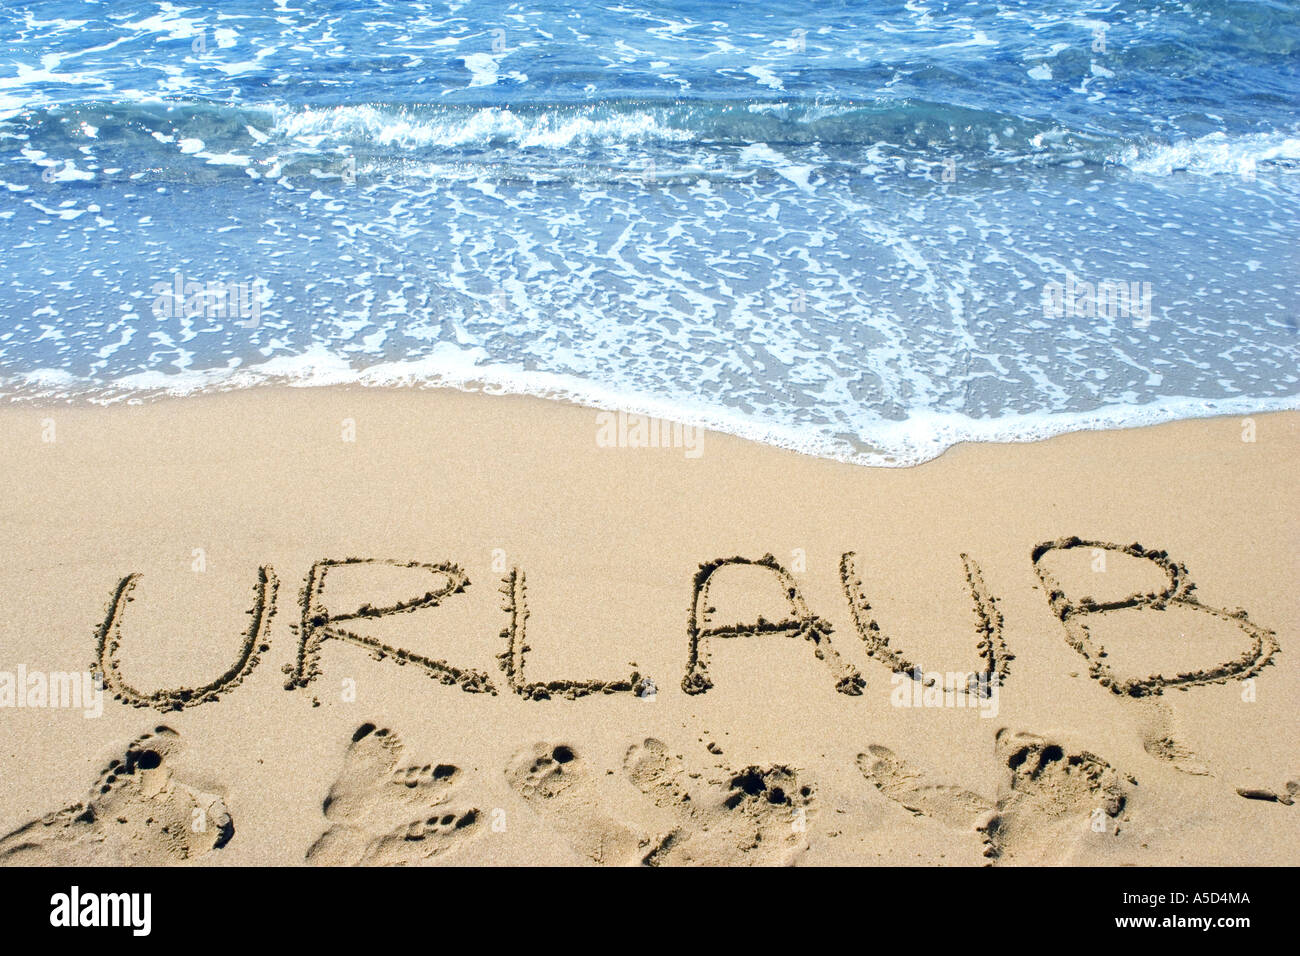 Word (Vacation) written in sand on beach - Stock Image